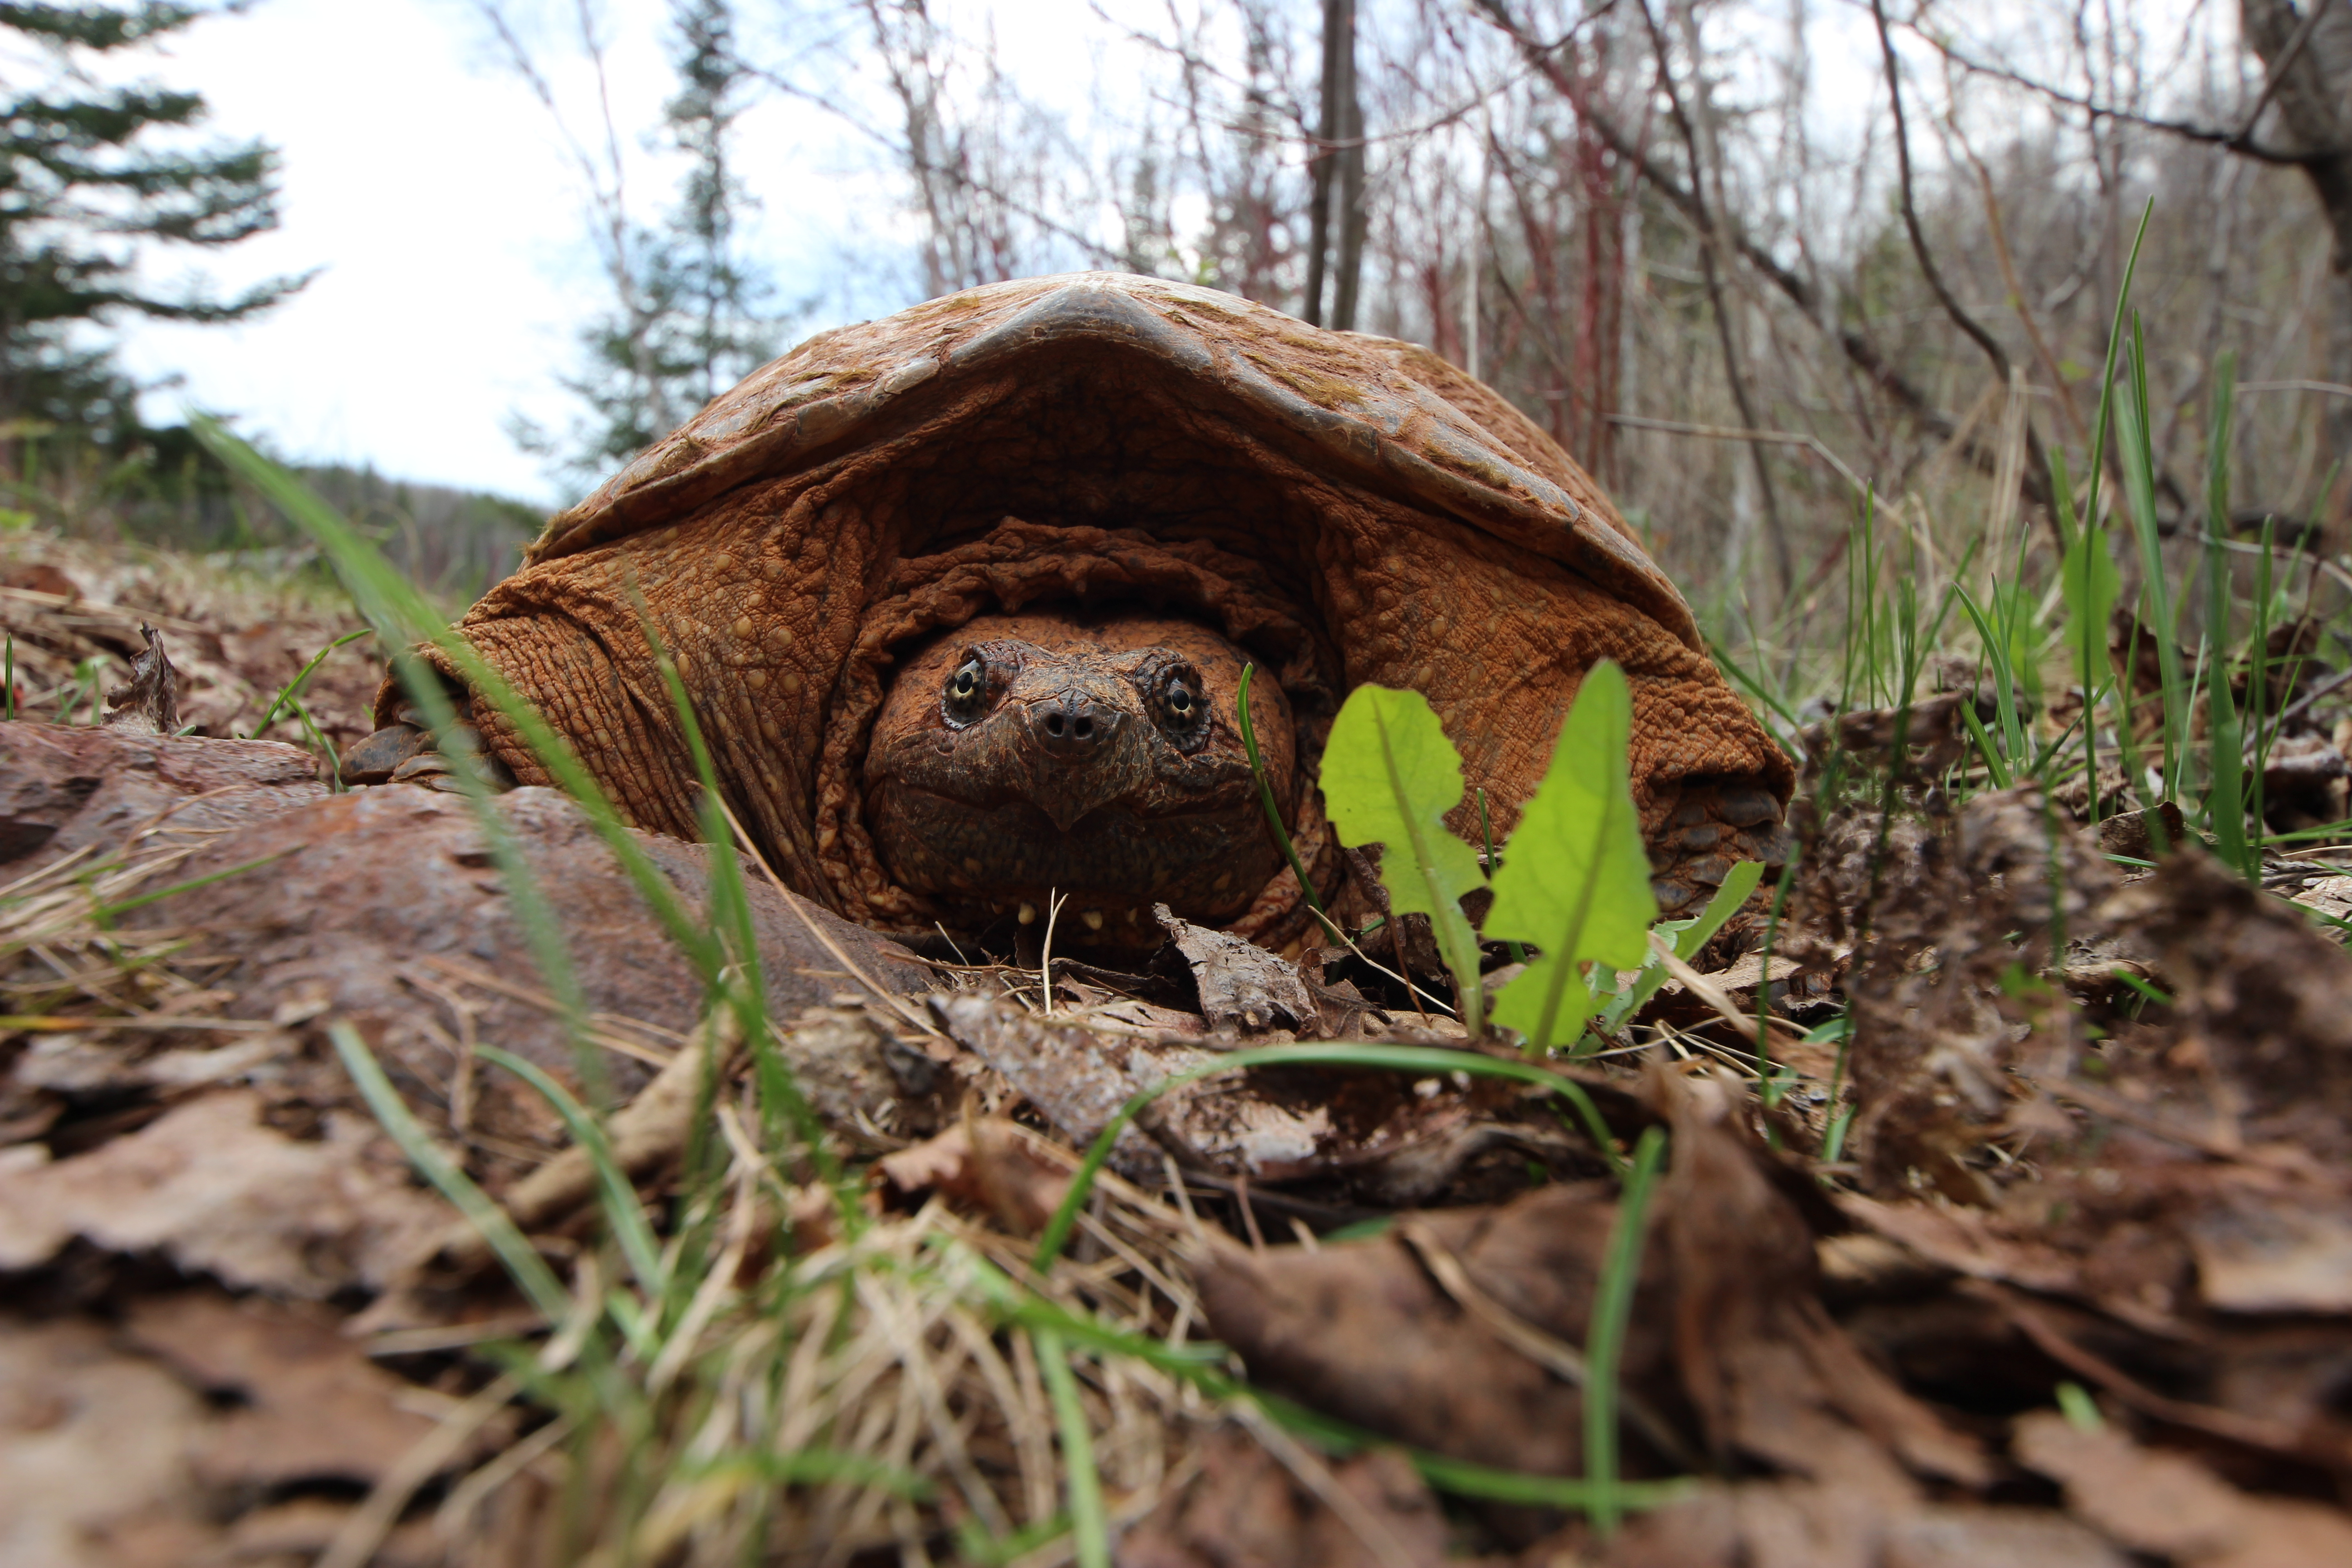 Iron Ore Stained Snapping Turtle